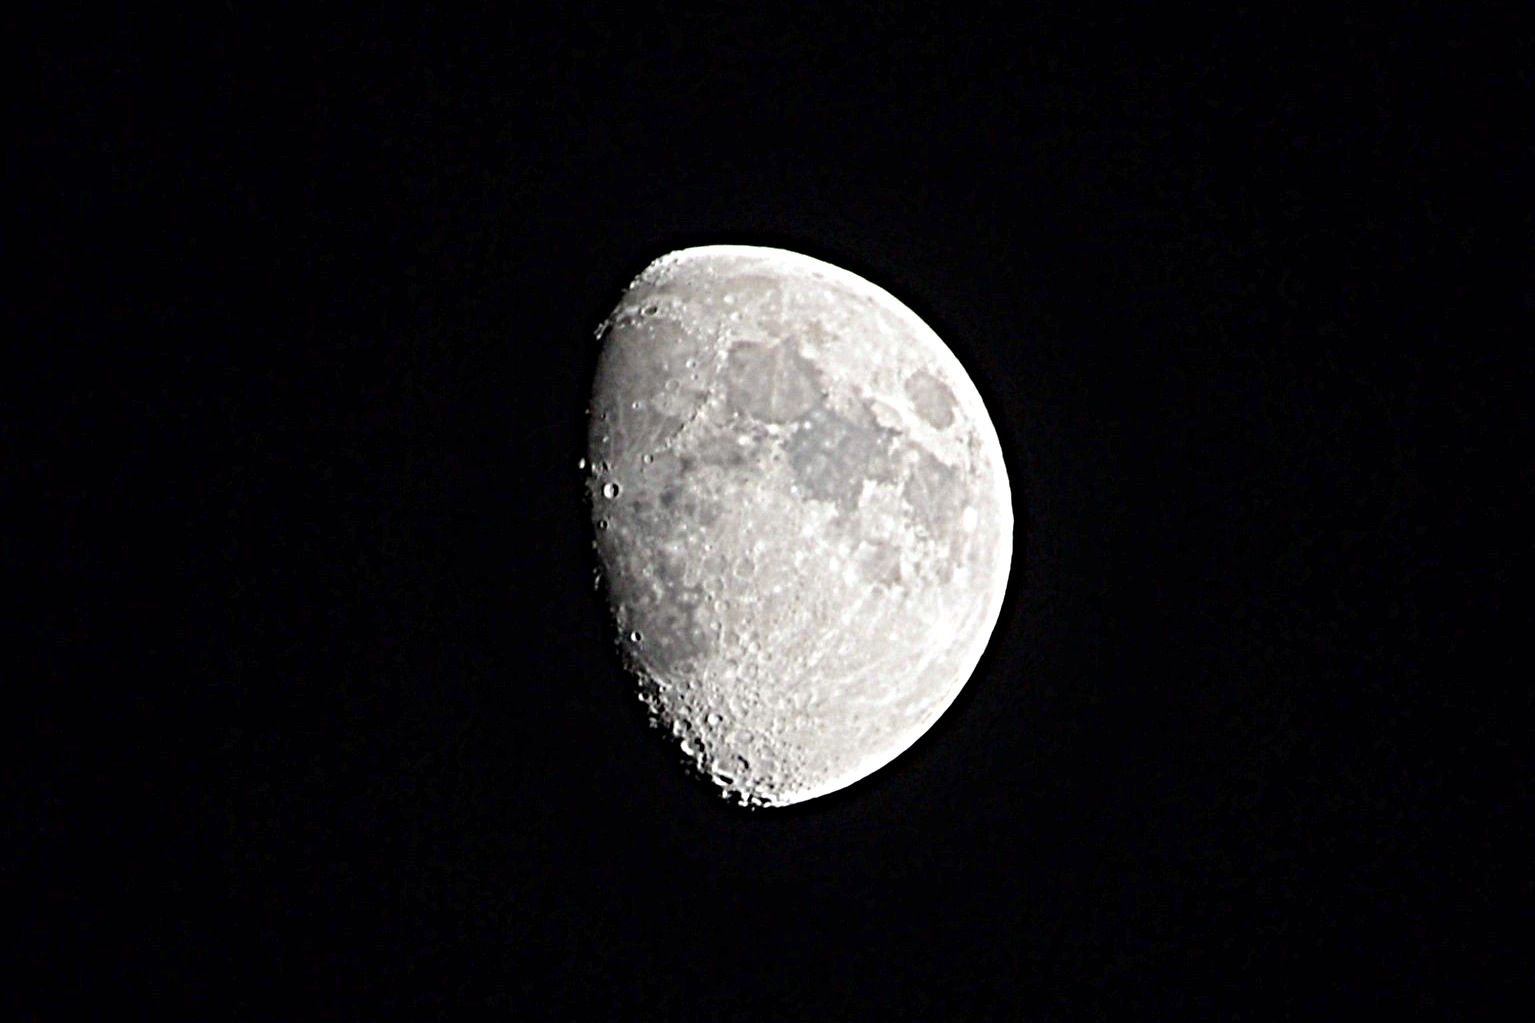 Moon from my home.